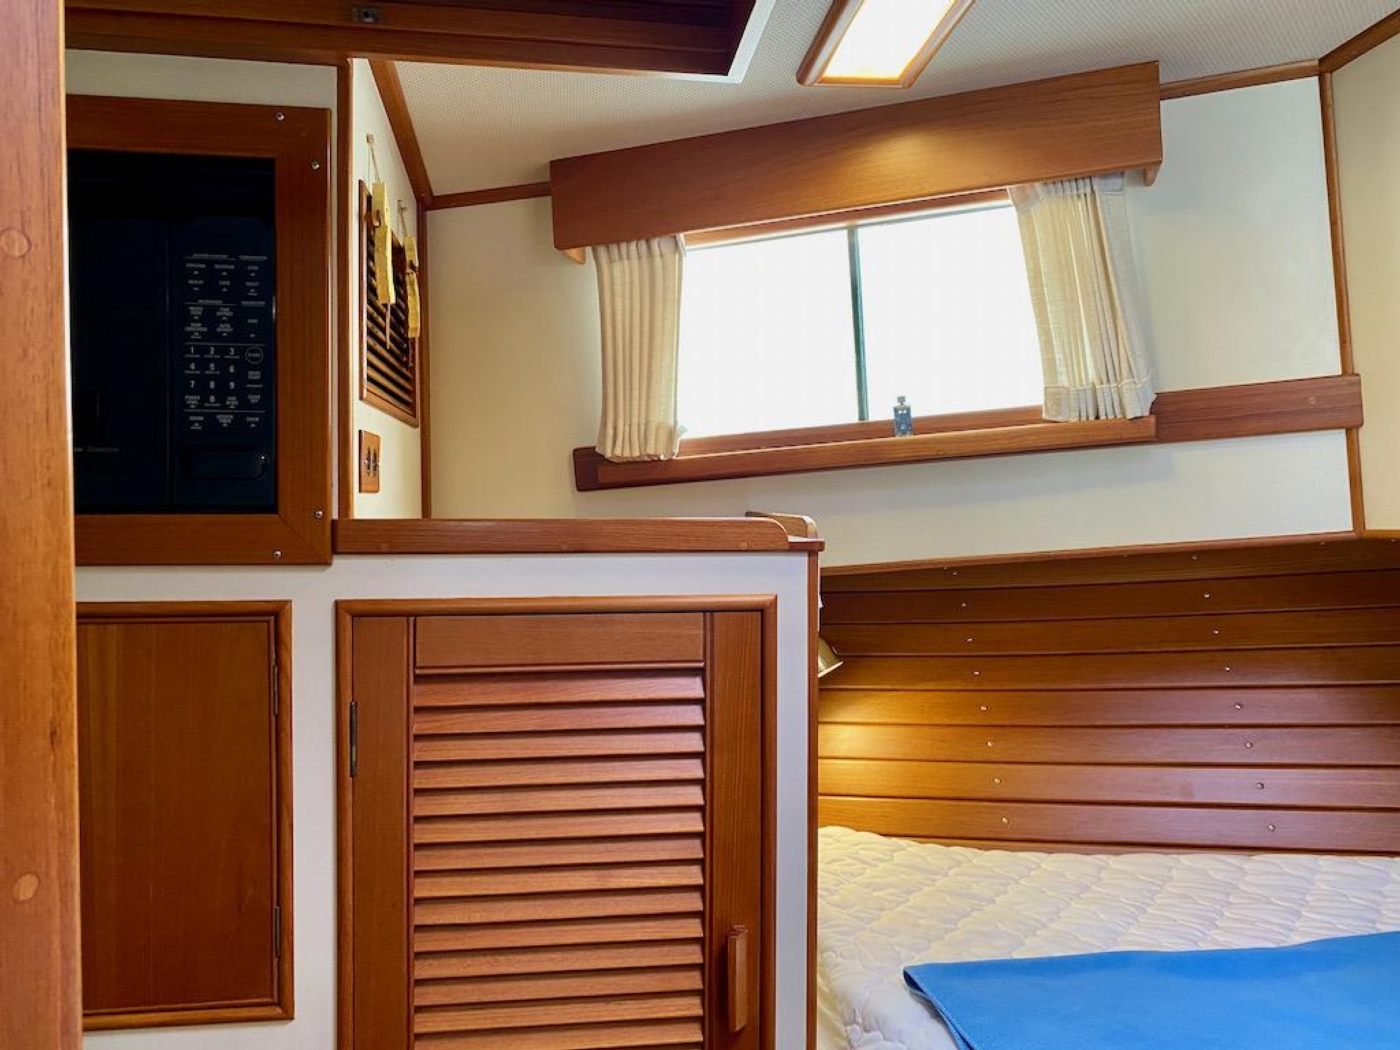 1998 Grand Banks 42 Classic, Fwd guest cabin 3